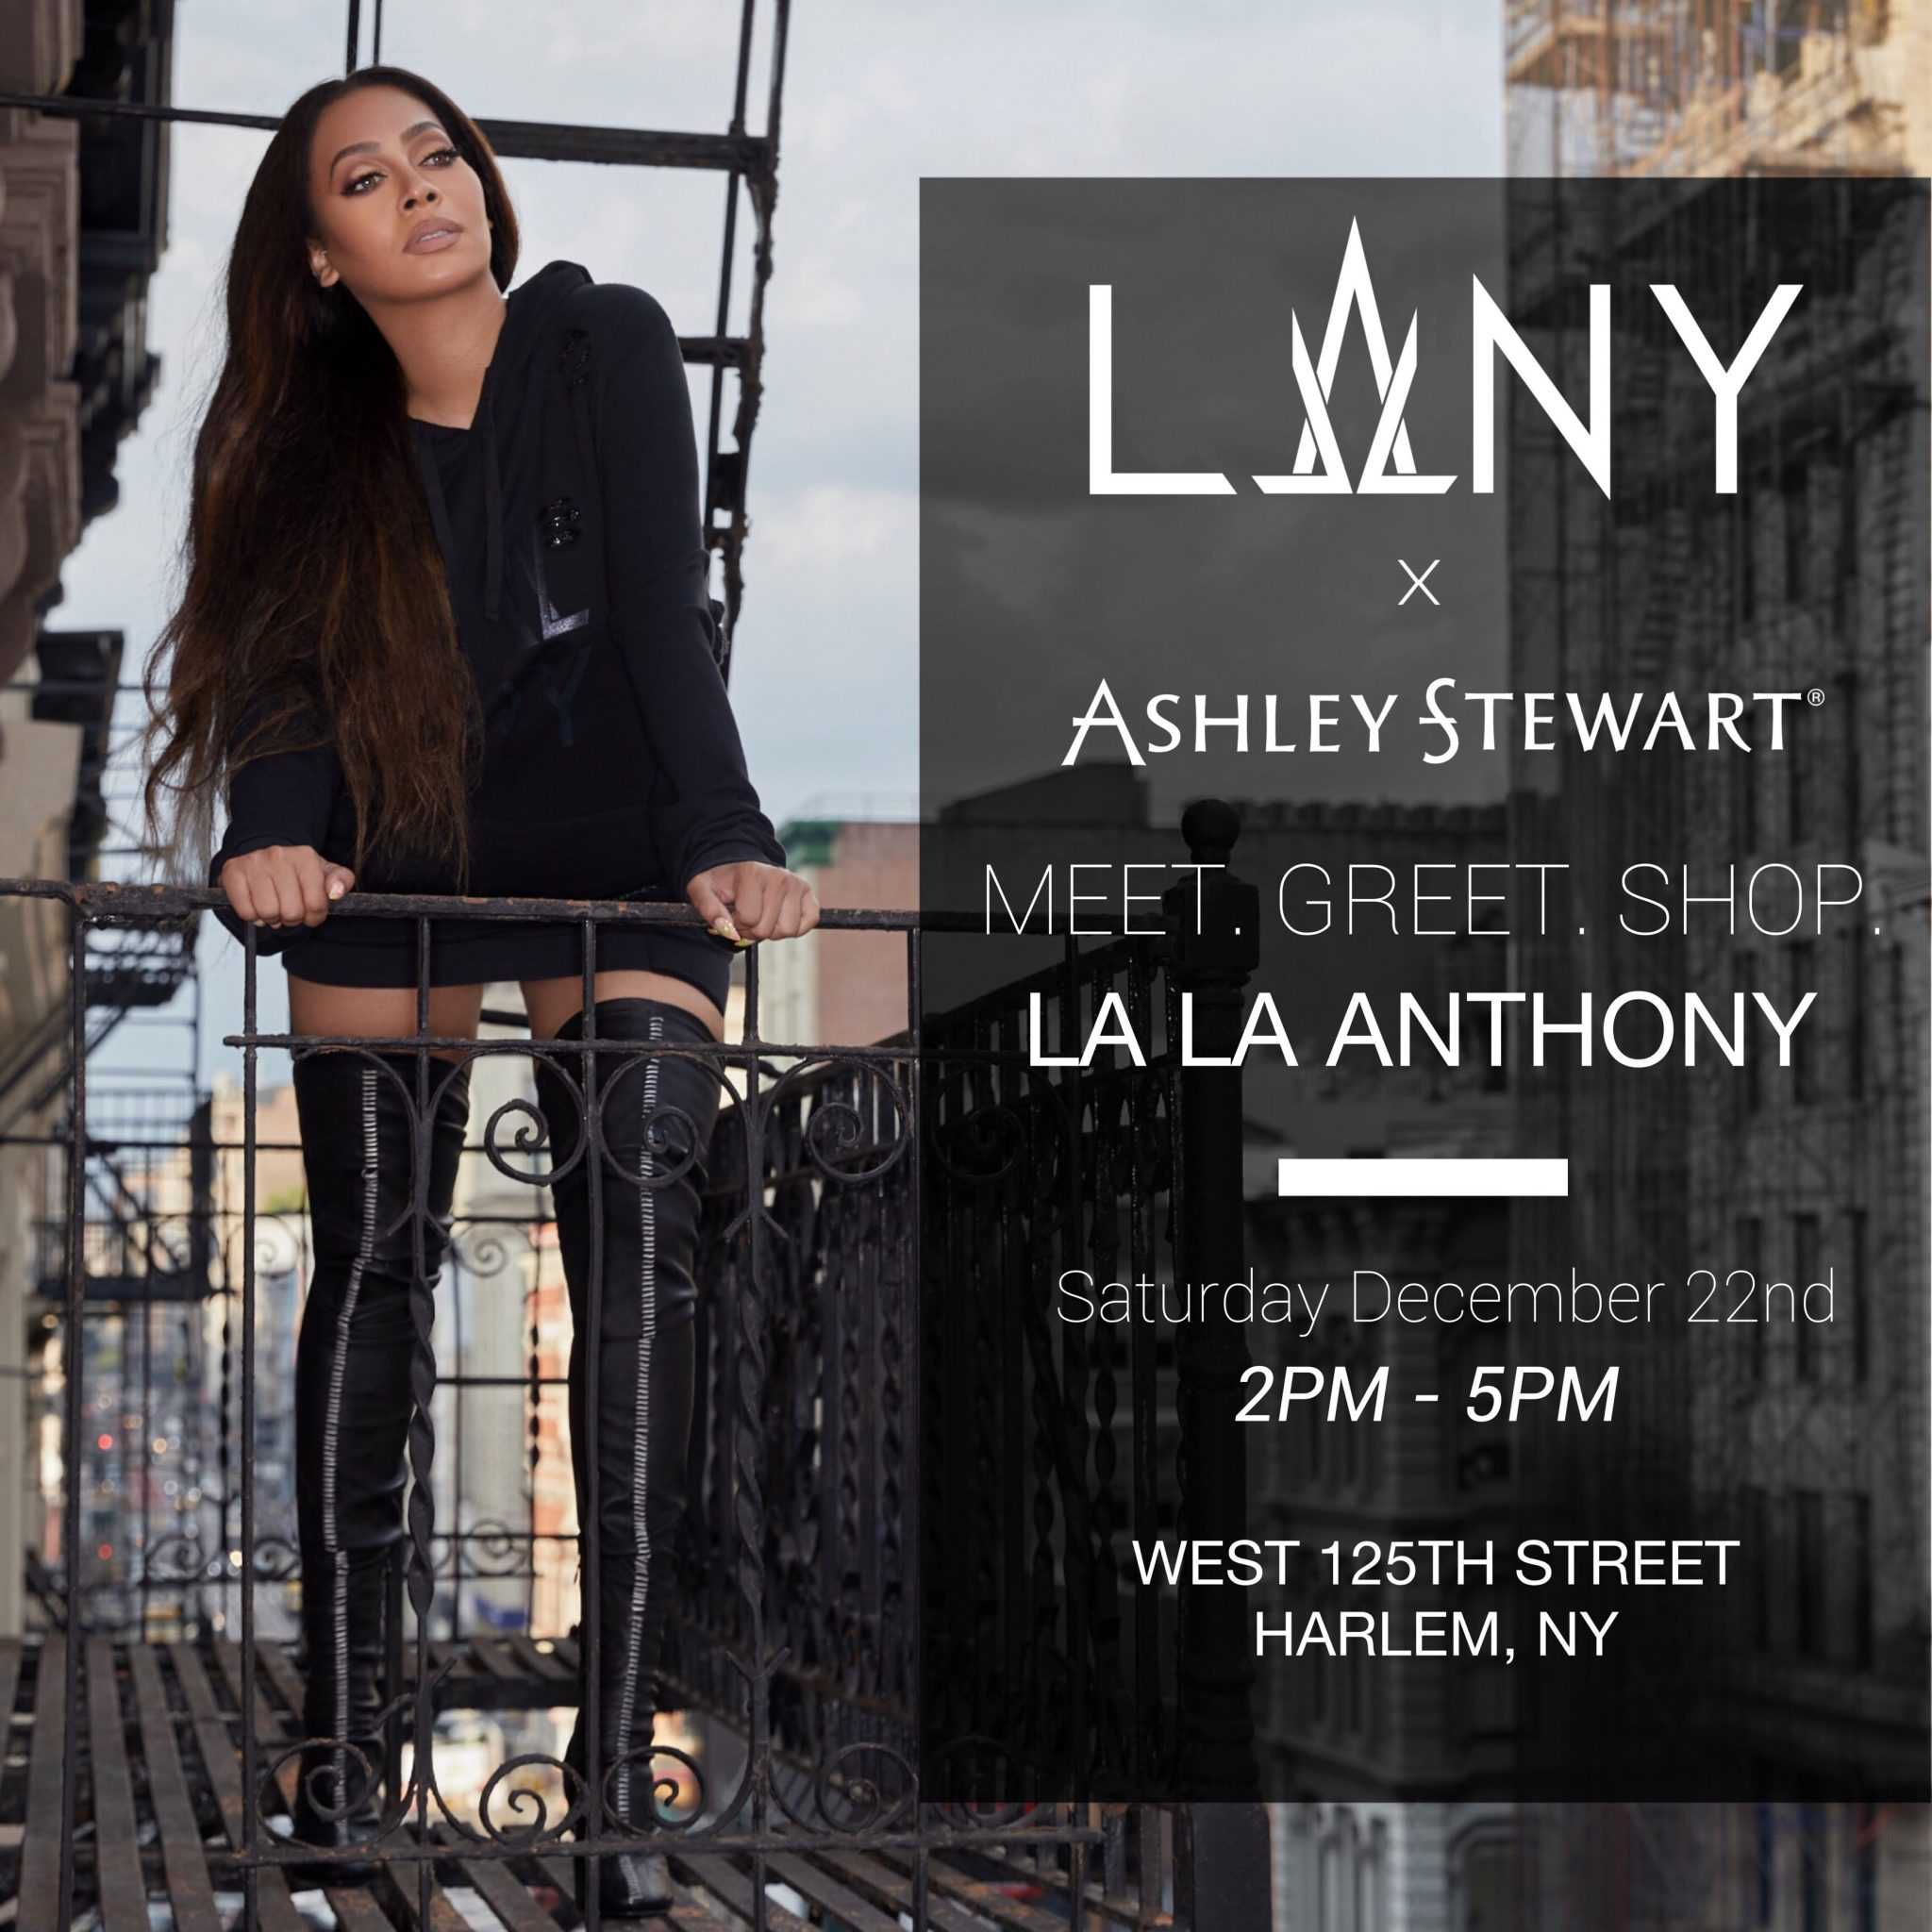 LA LA ANTHONY LAUNCHES NEW DENIM COLLECTION WITH ASHLEY STEWART [EVENT]